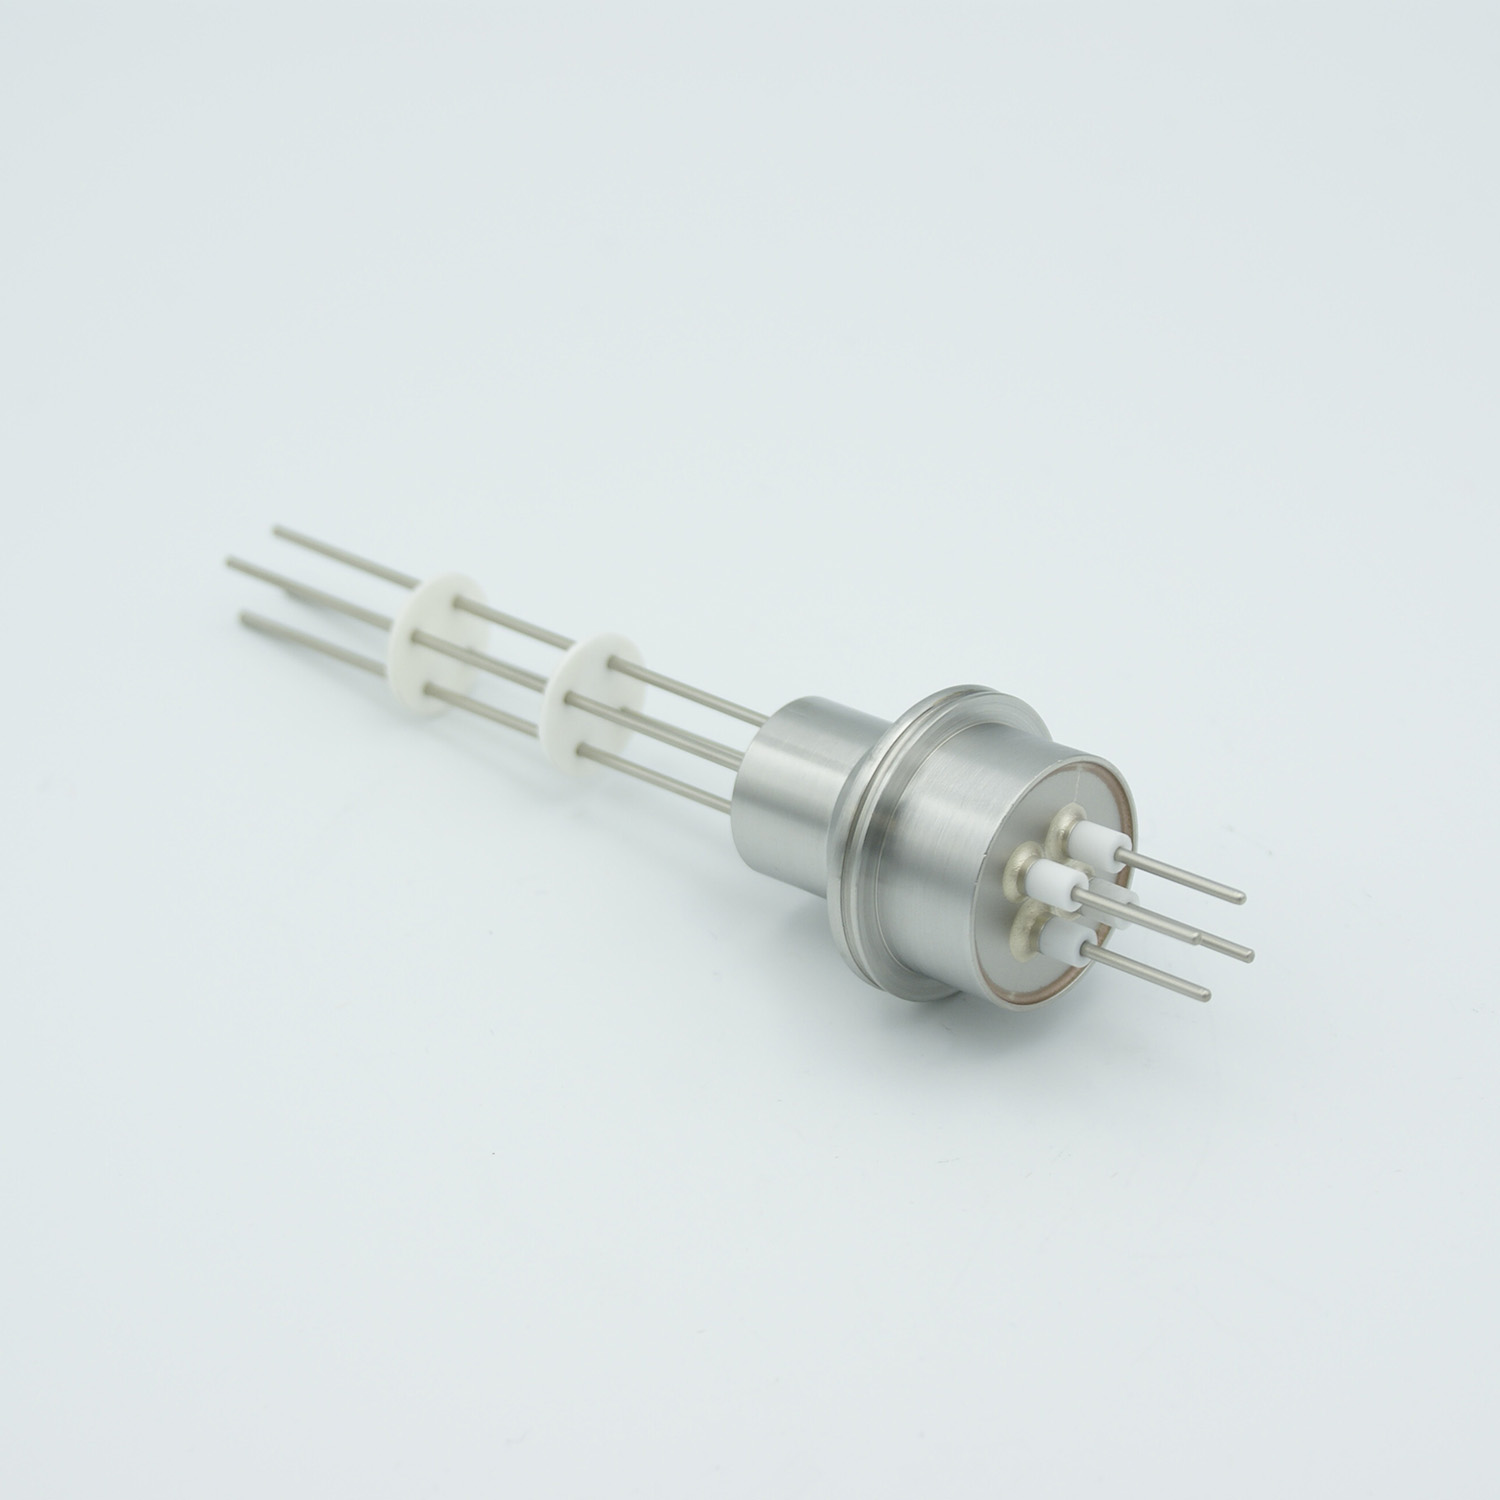 2 pair Thermocouple type-E feedthrough for push on connectors, weld fitting